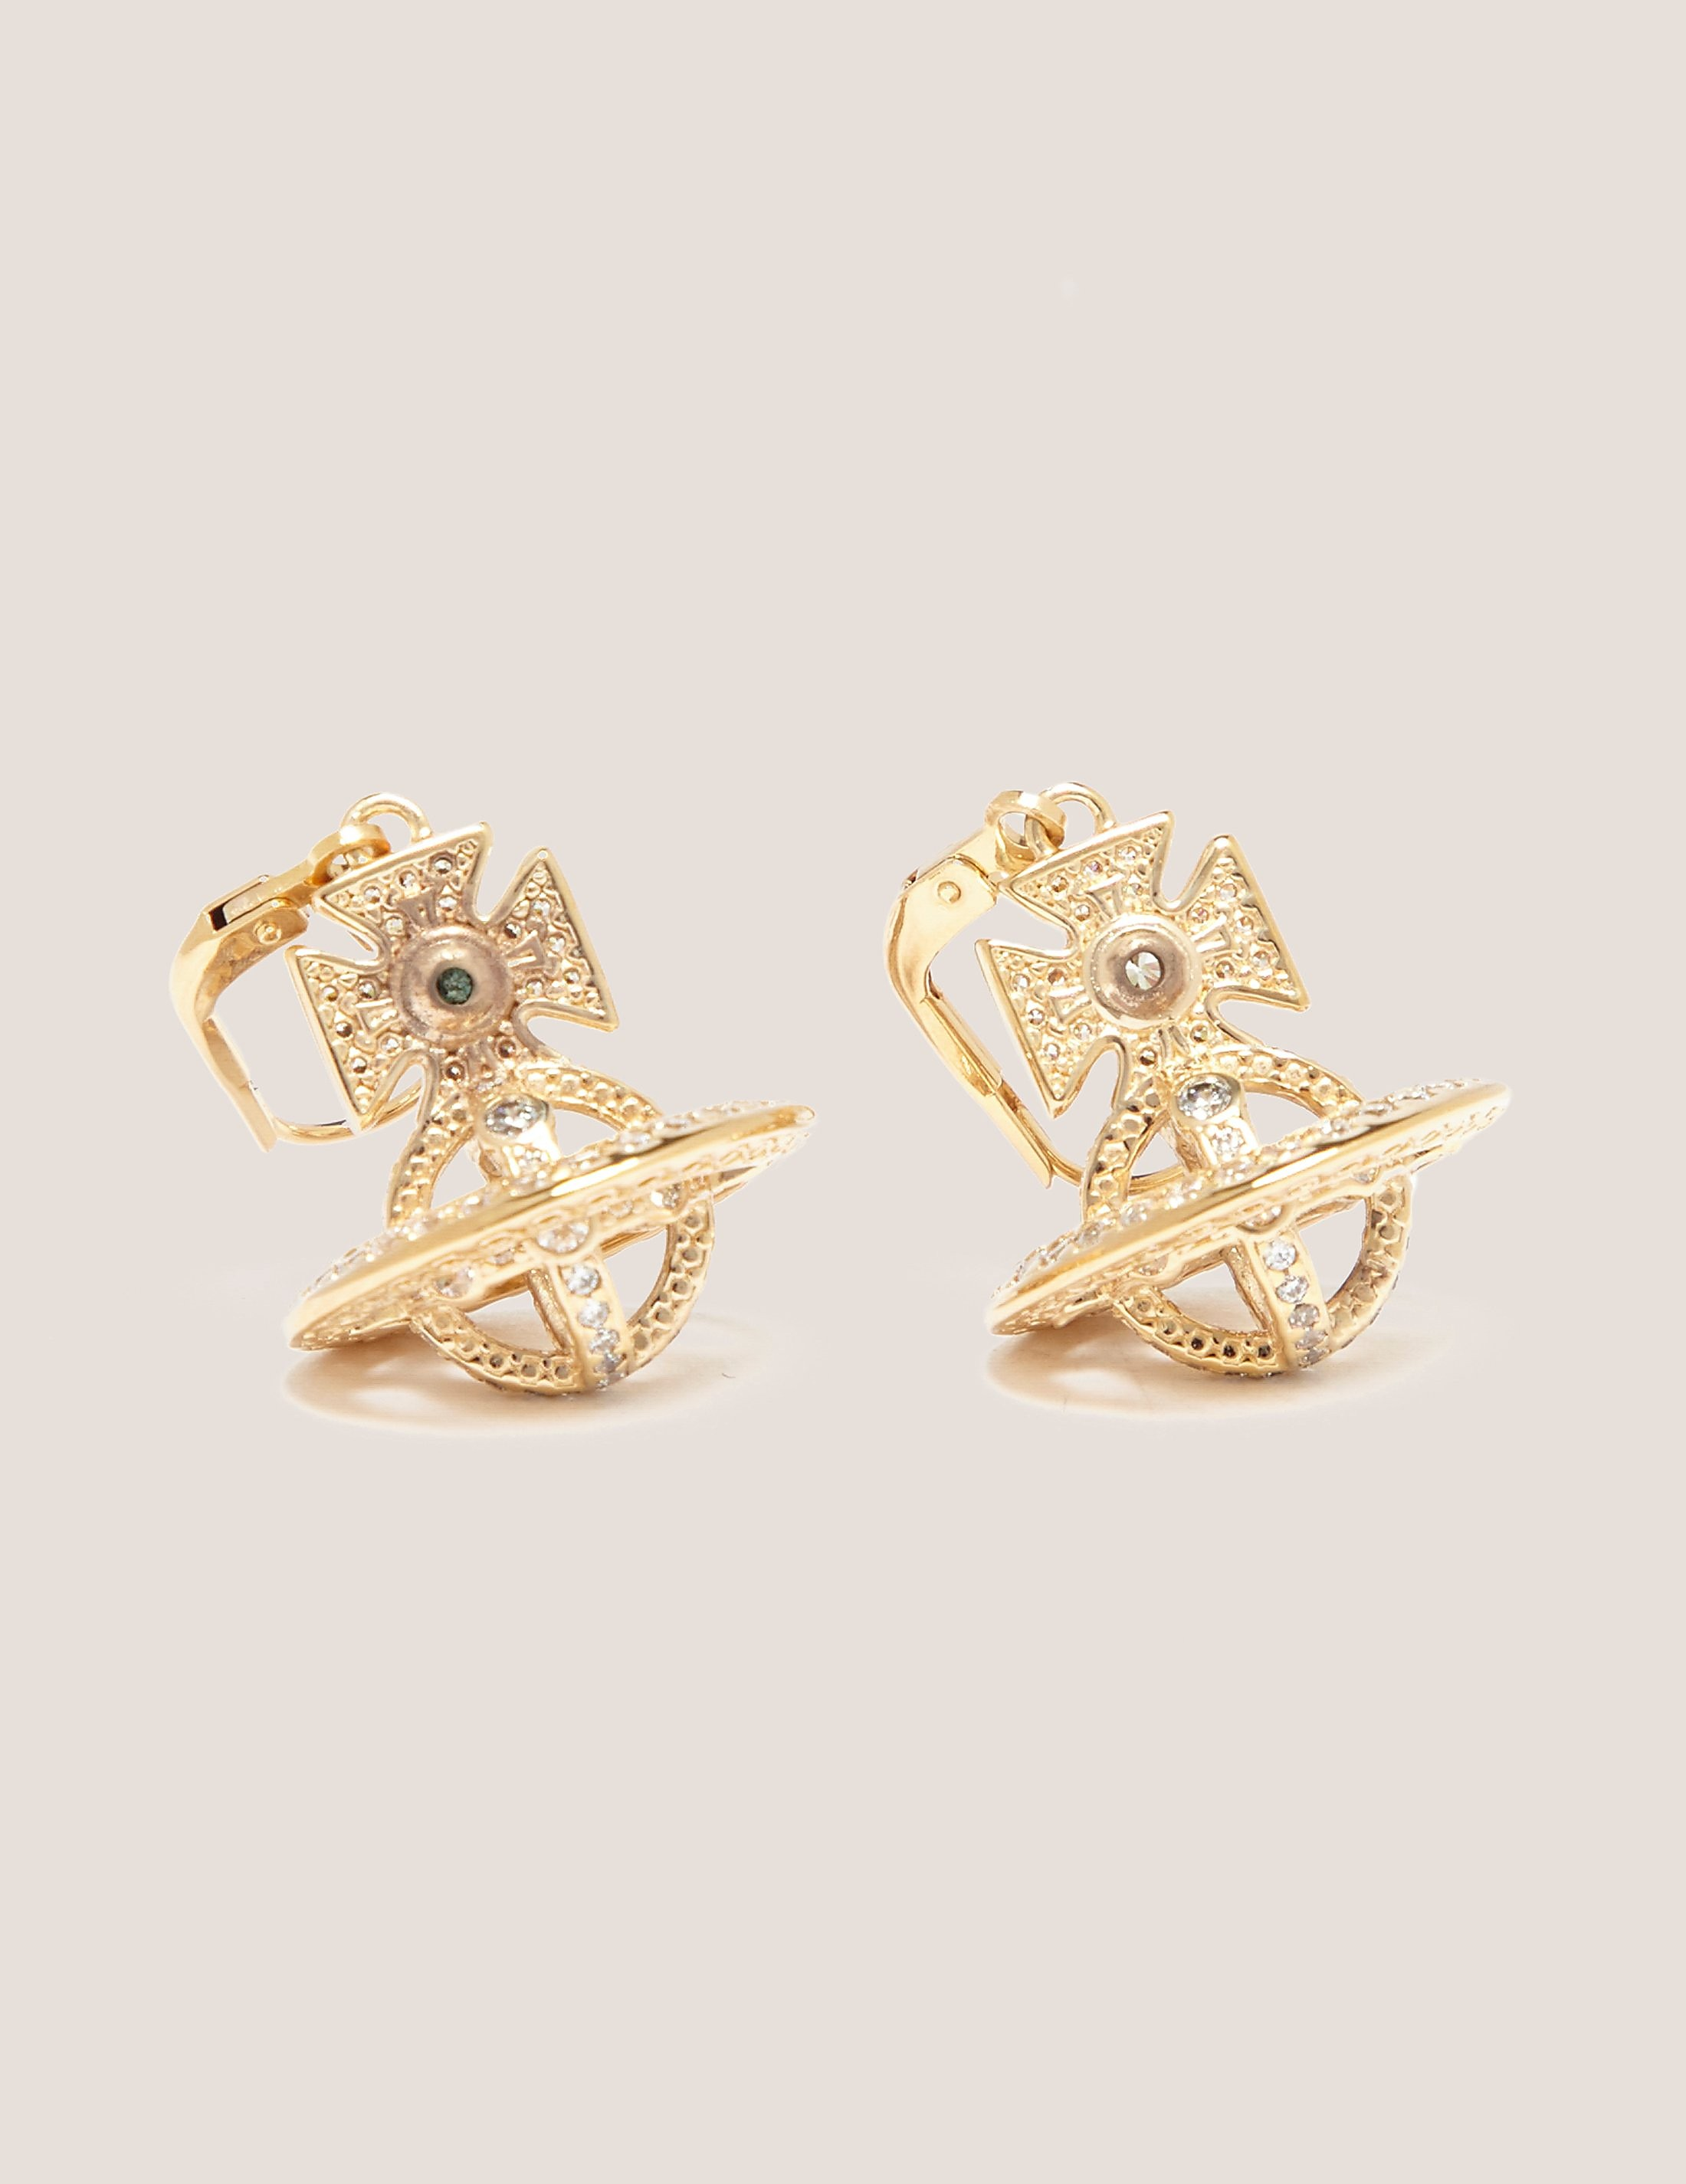 Vivienne Westwood Isabella Earrings